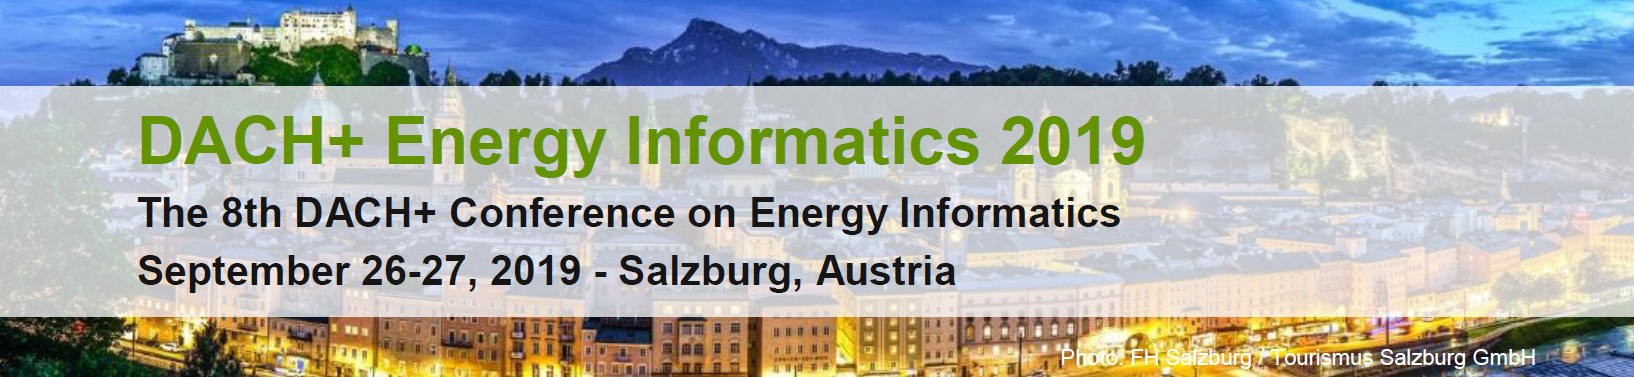 Join the 8th DACH+ Energy Informatics 2019 Call for Papers